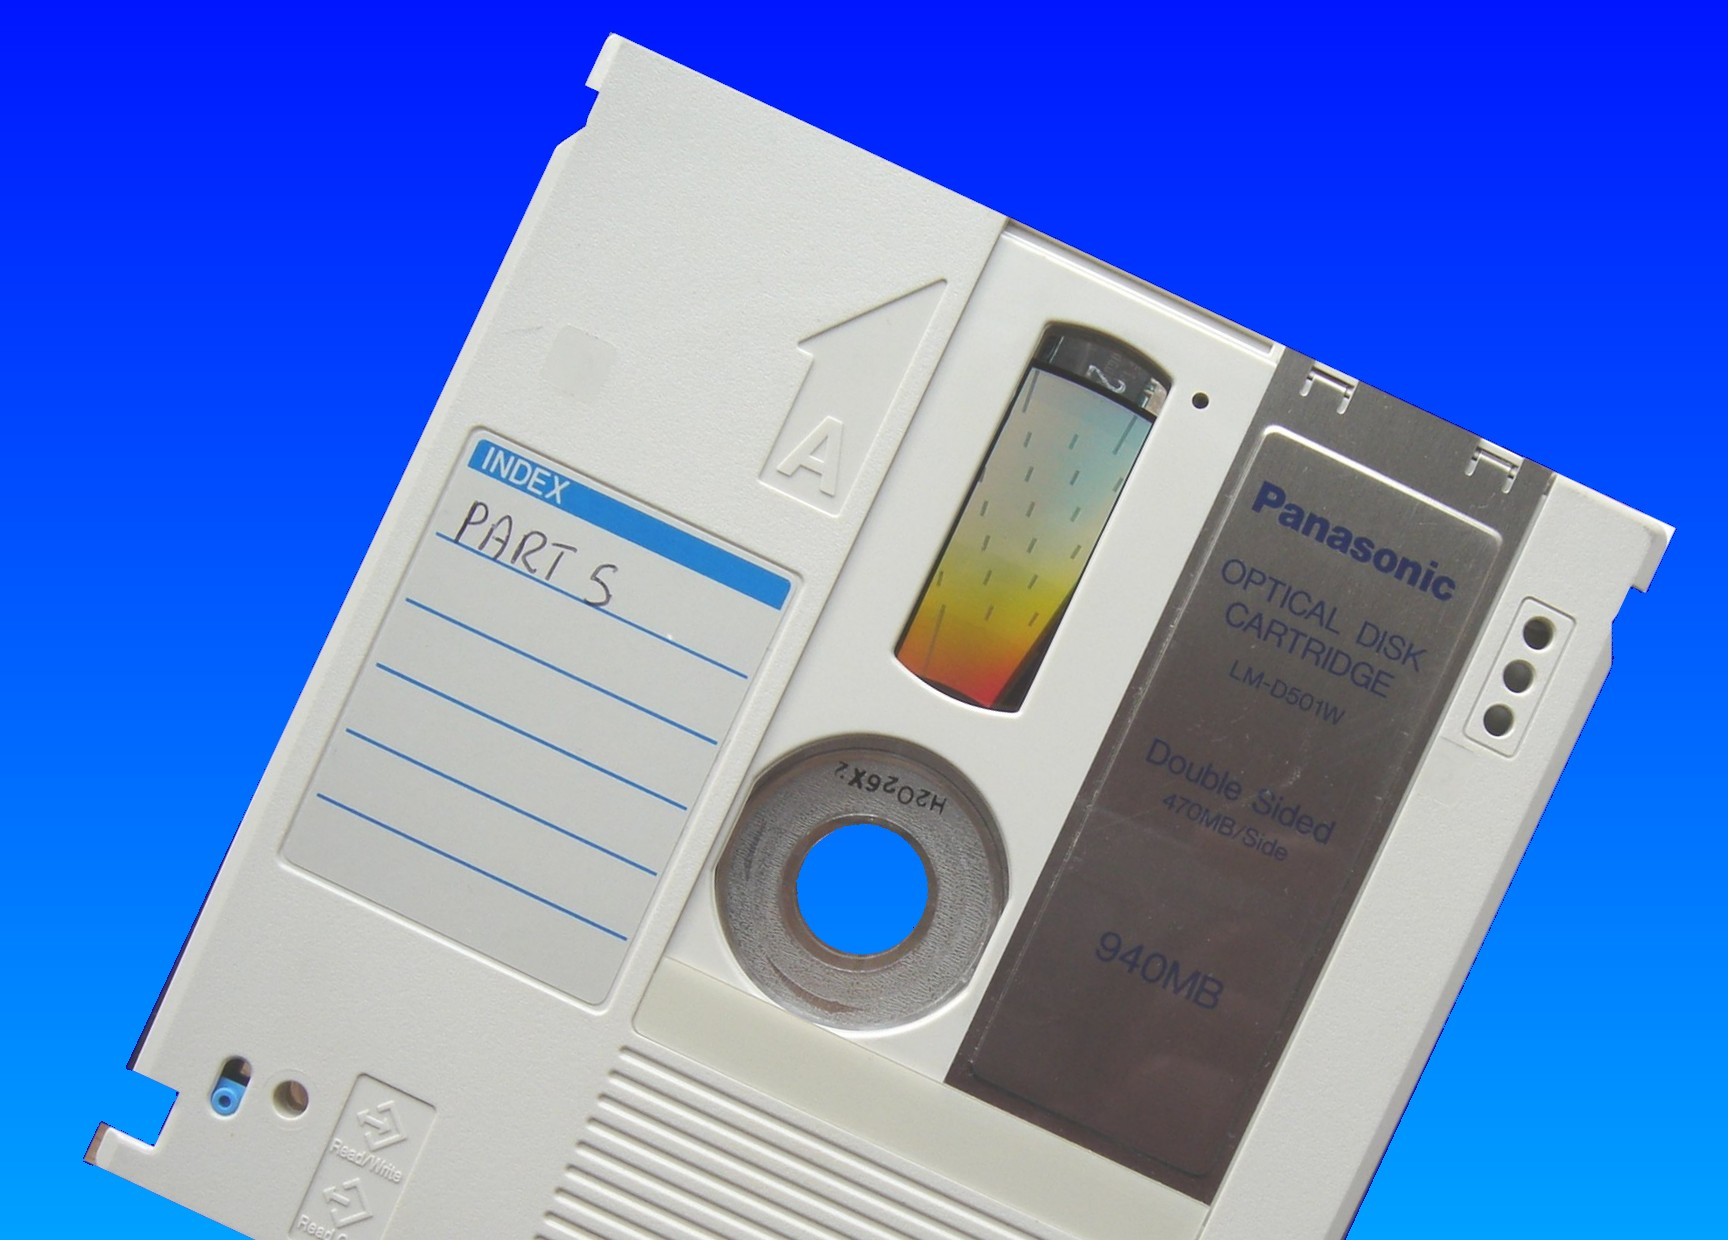 A Panasonic LM-xxxx series Optical disk ready for file transfer.